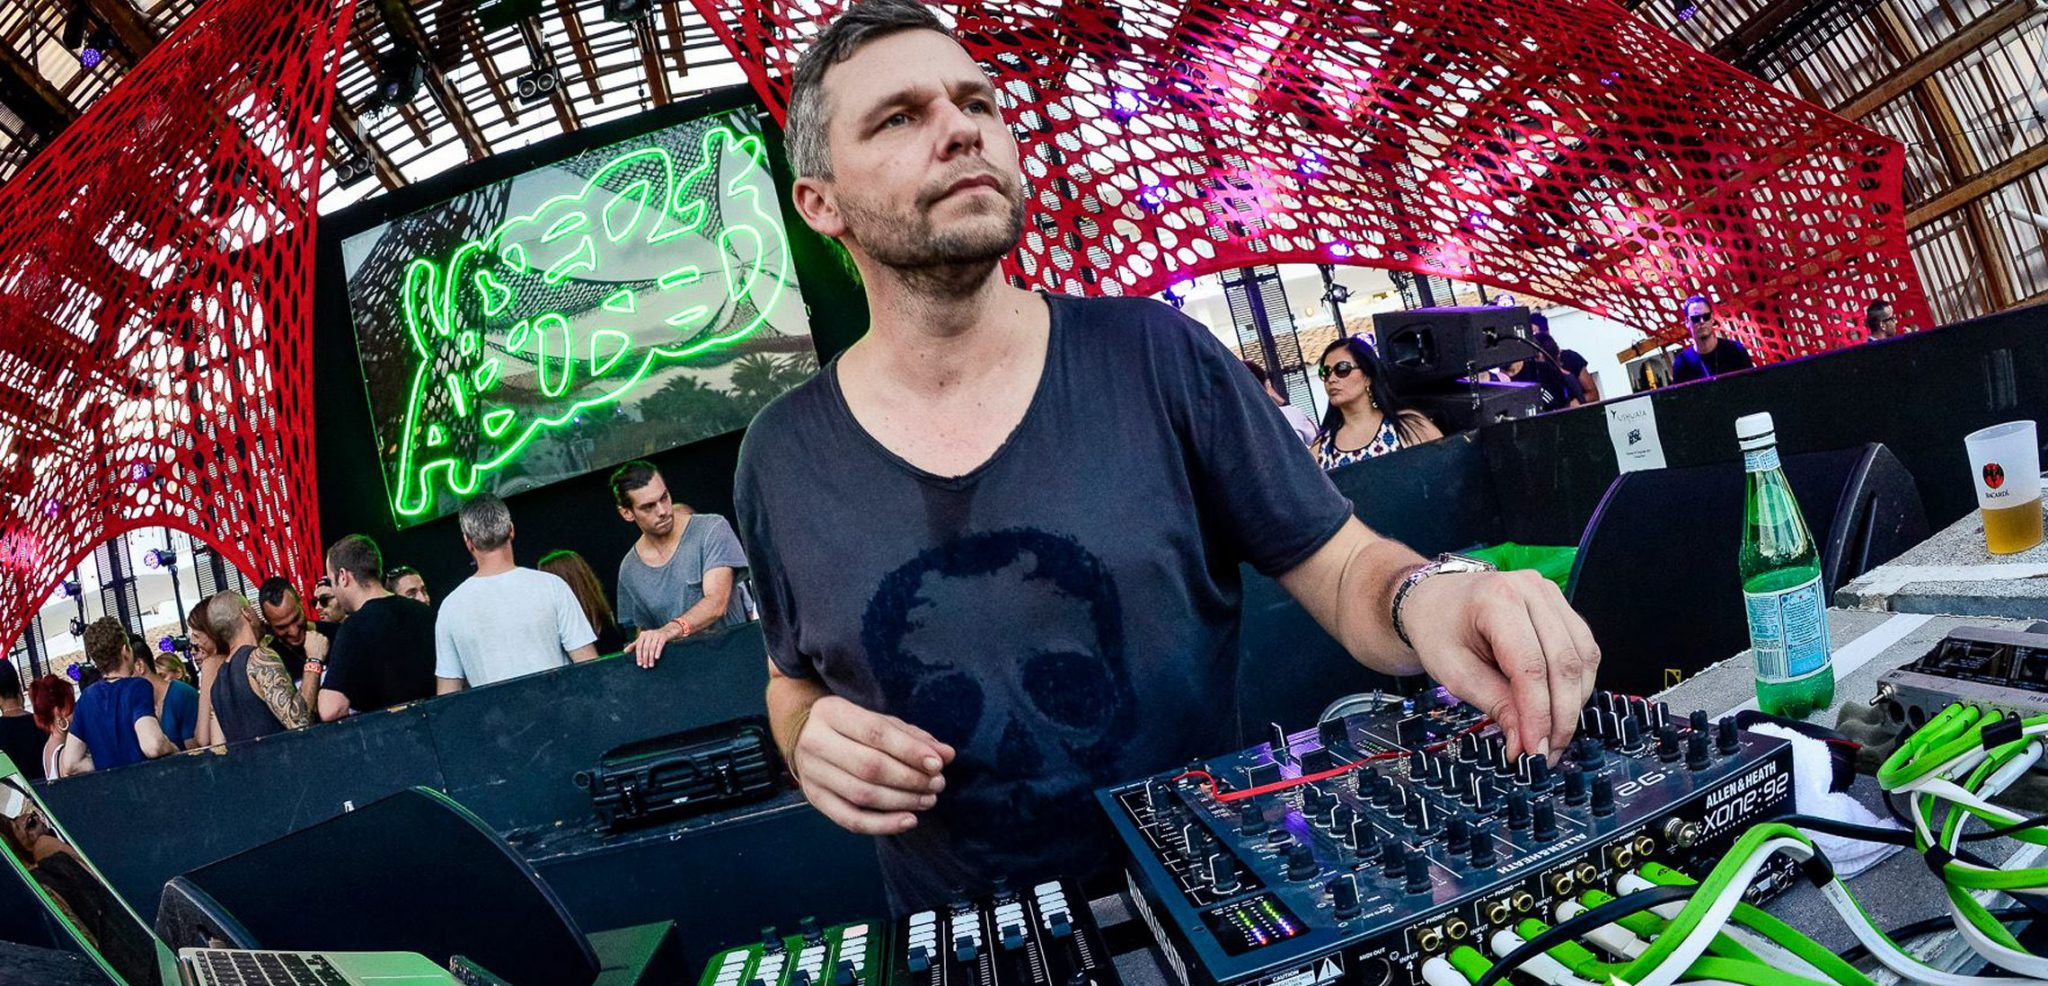 #9414 20 YEARS OF MARTIN BUTTRICH GLOBAL TOUR